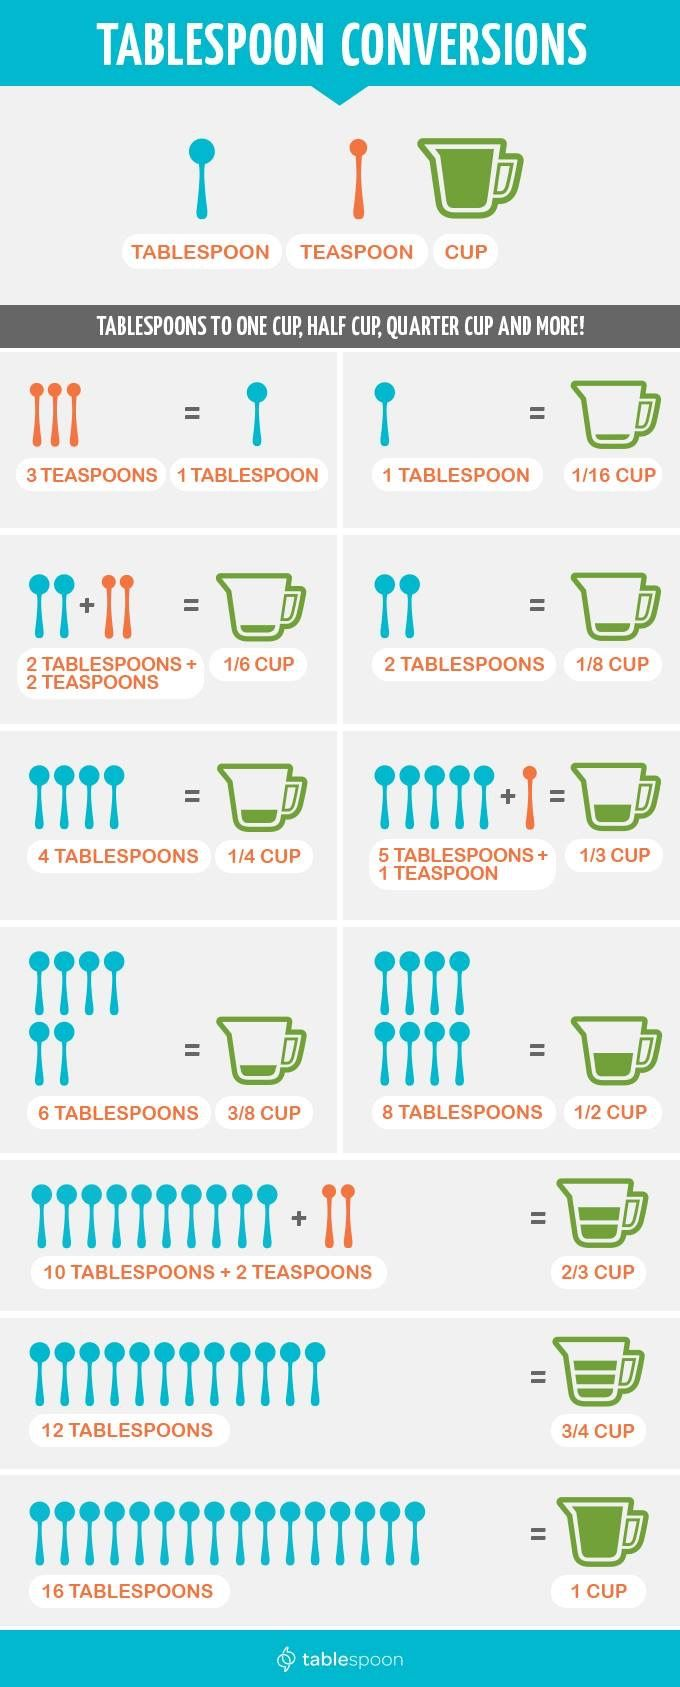 Measurement conversions tablespoon teaspoon and cups for 6 table spoons to cups